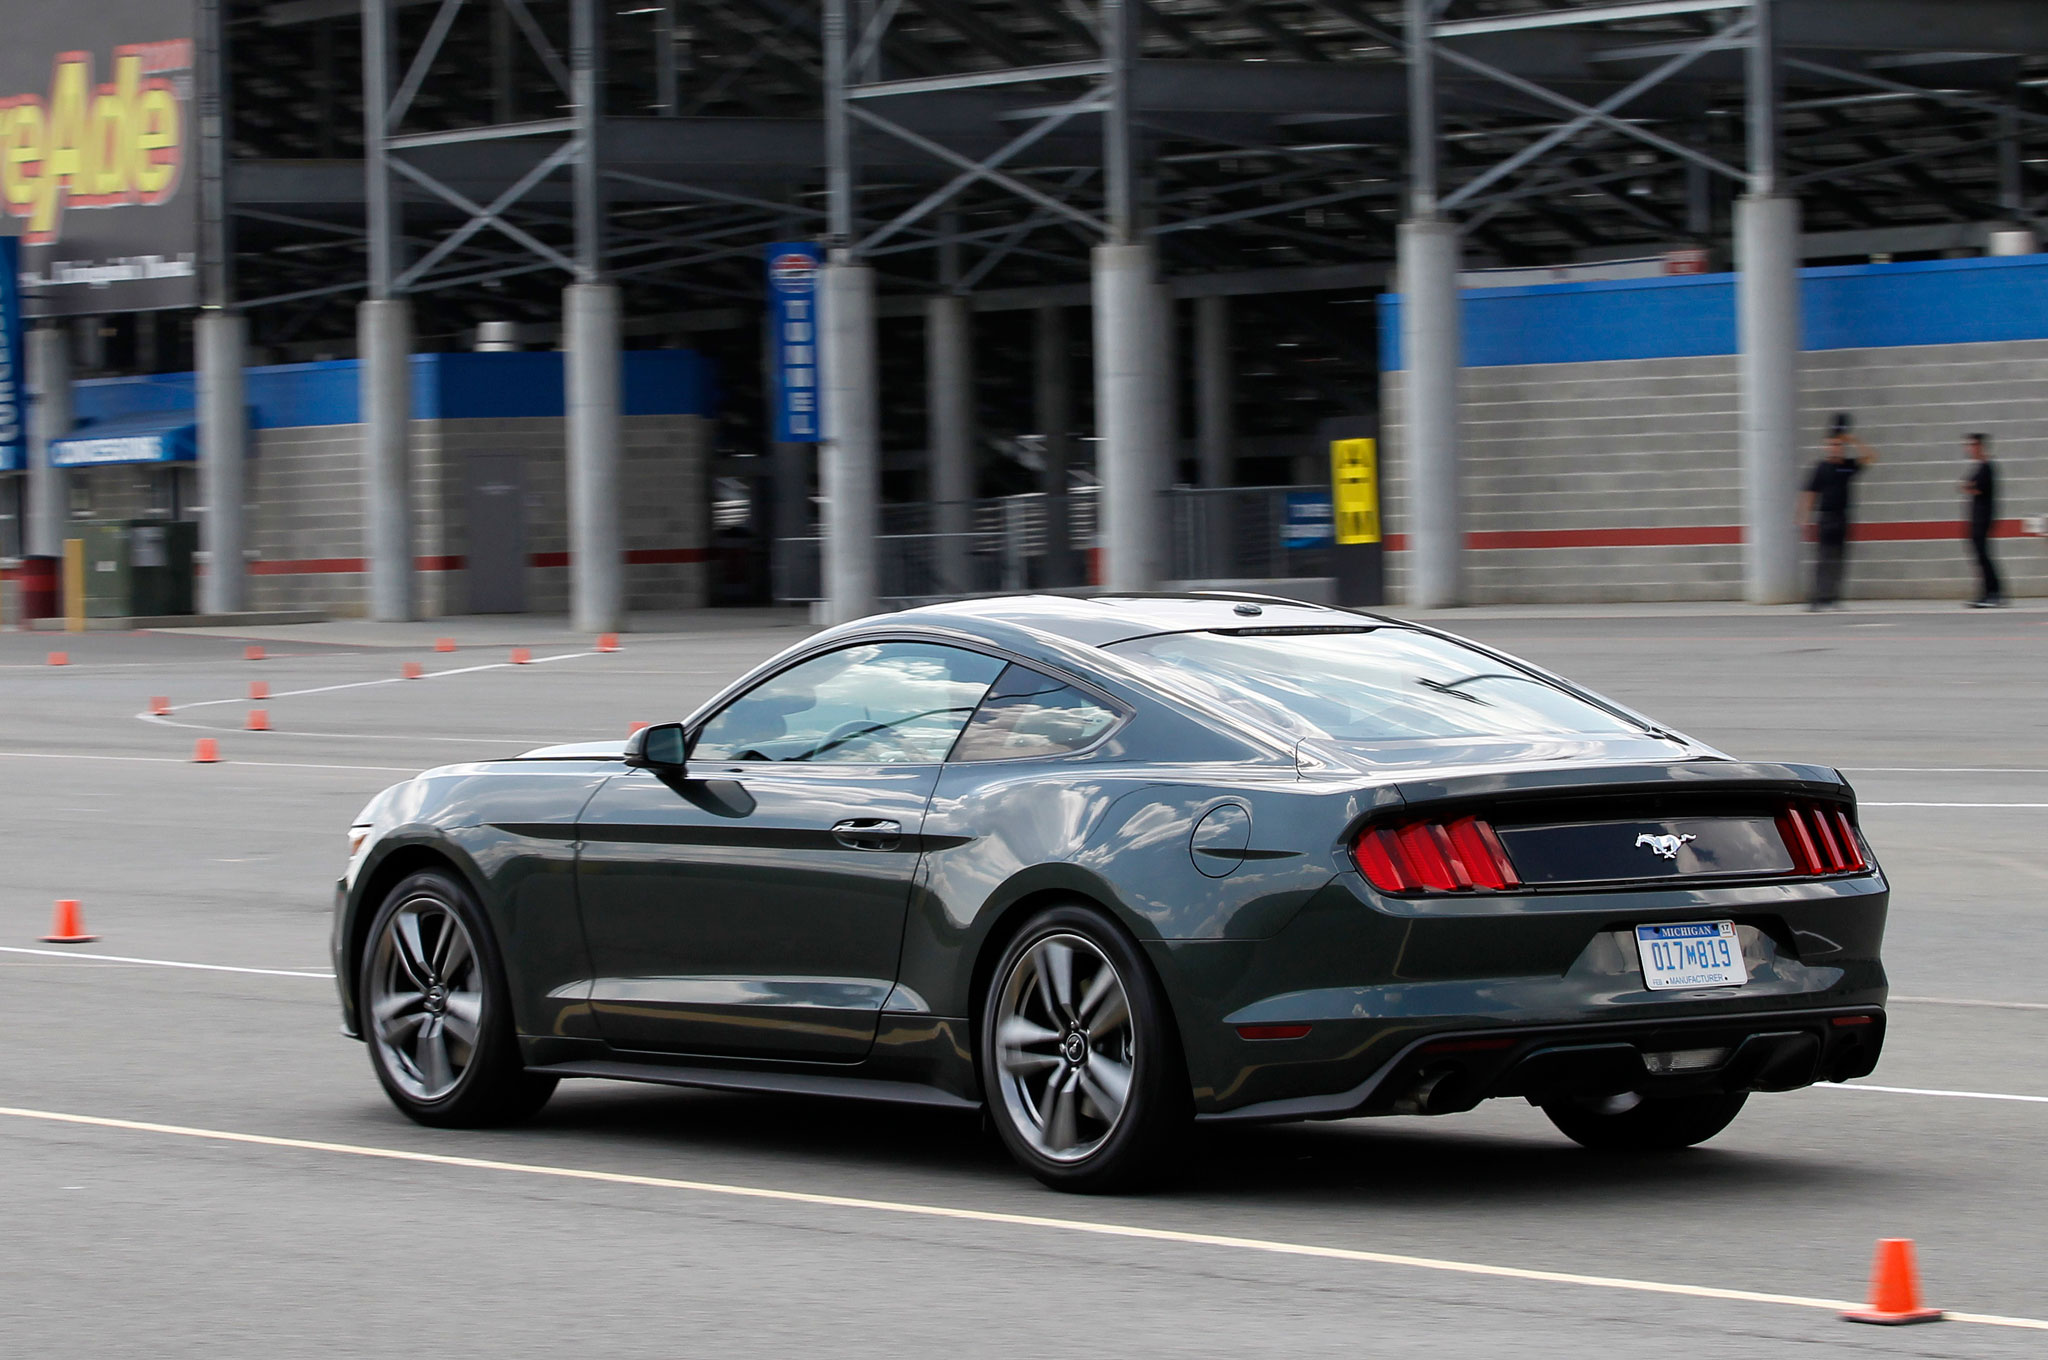 2015 Ford Mustang 2.3 EcoBoost First Ride - Automobile Magazine